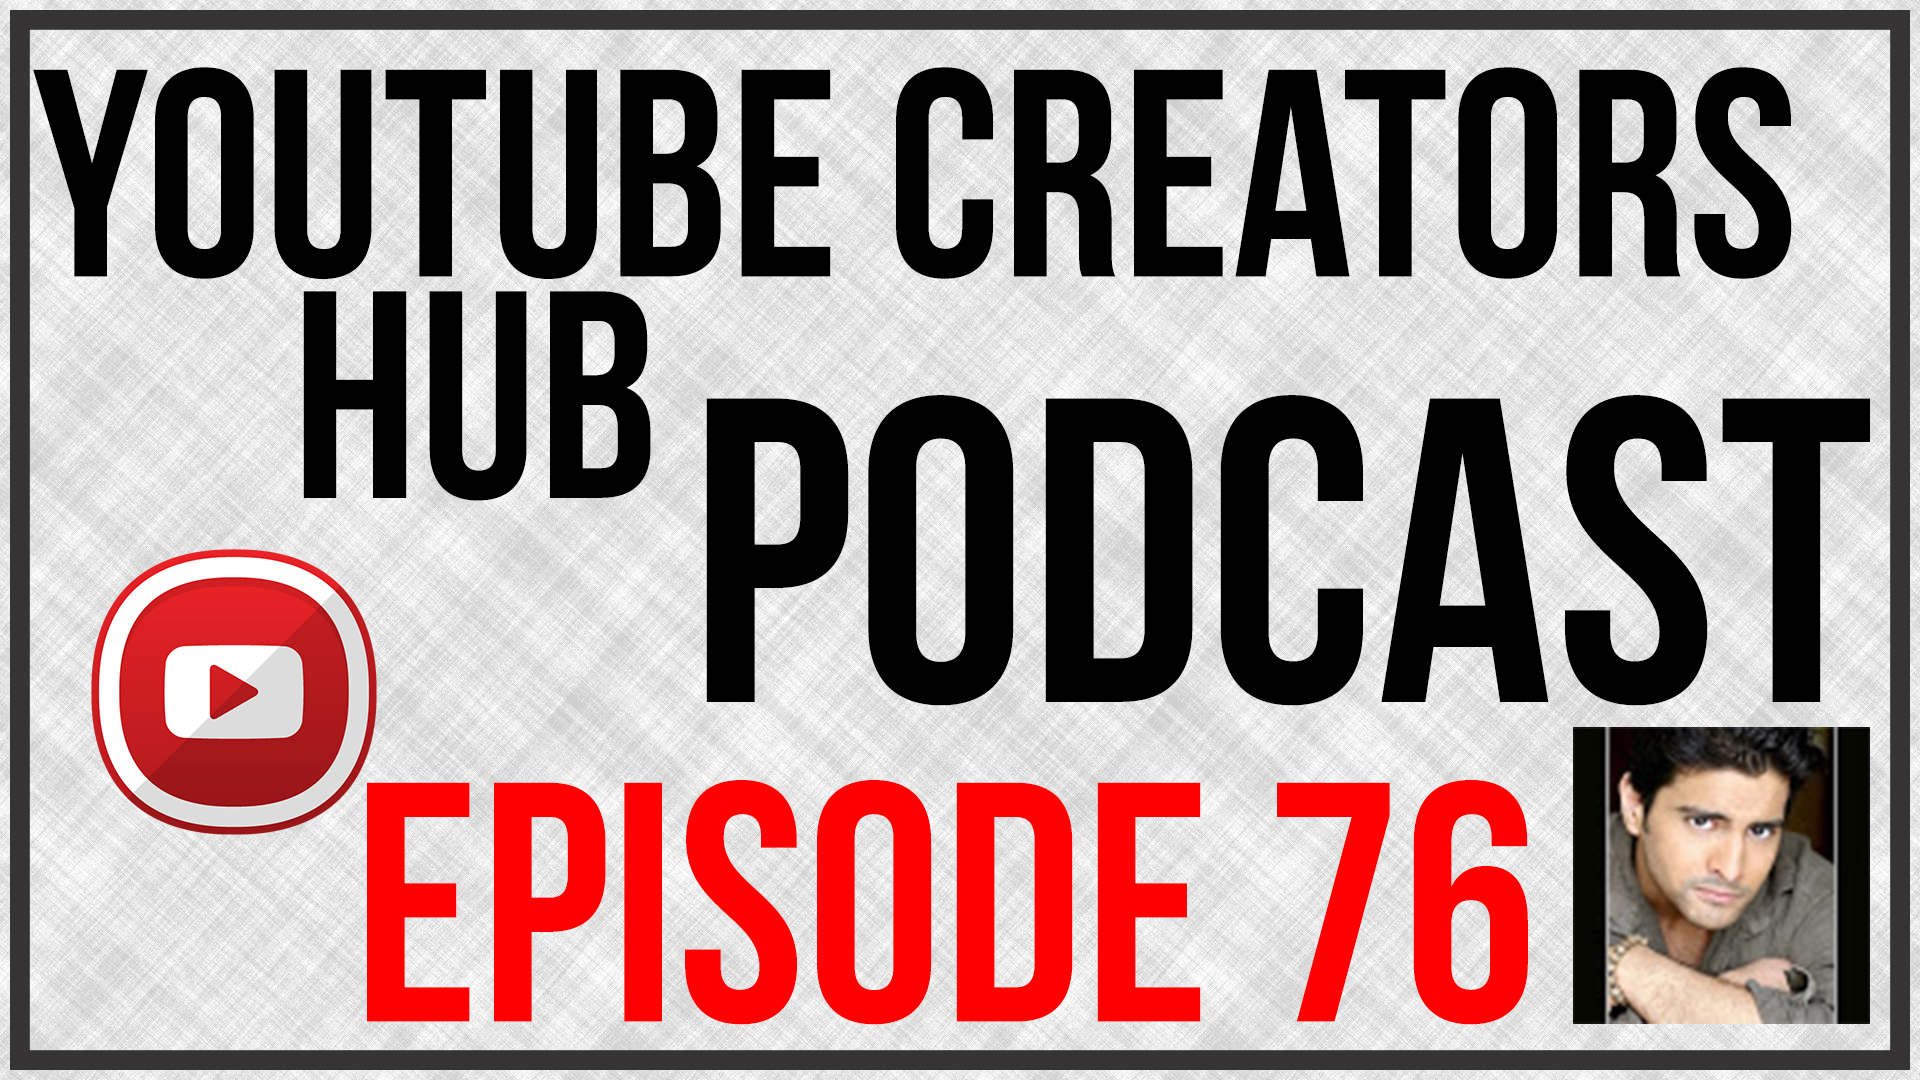 YouTube Creators Hub Podcast Episode 76